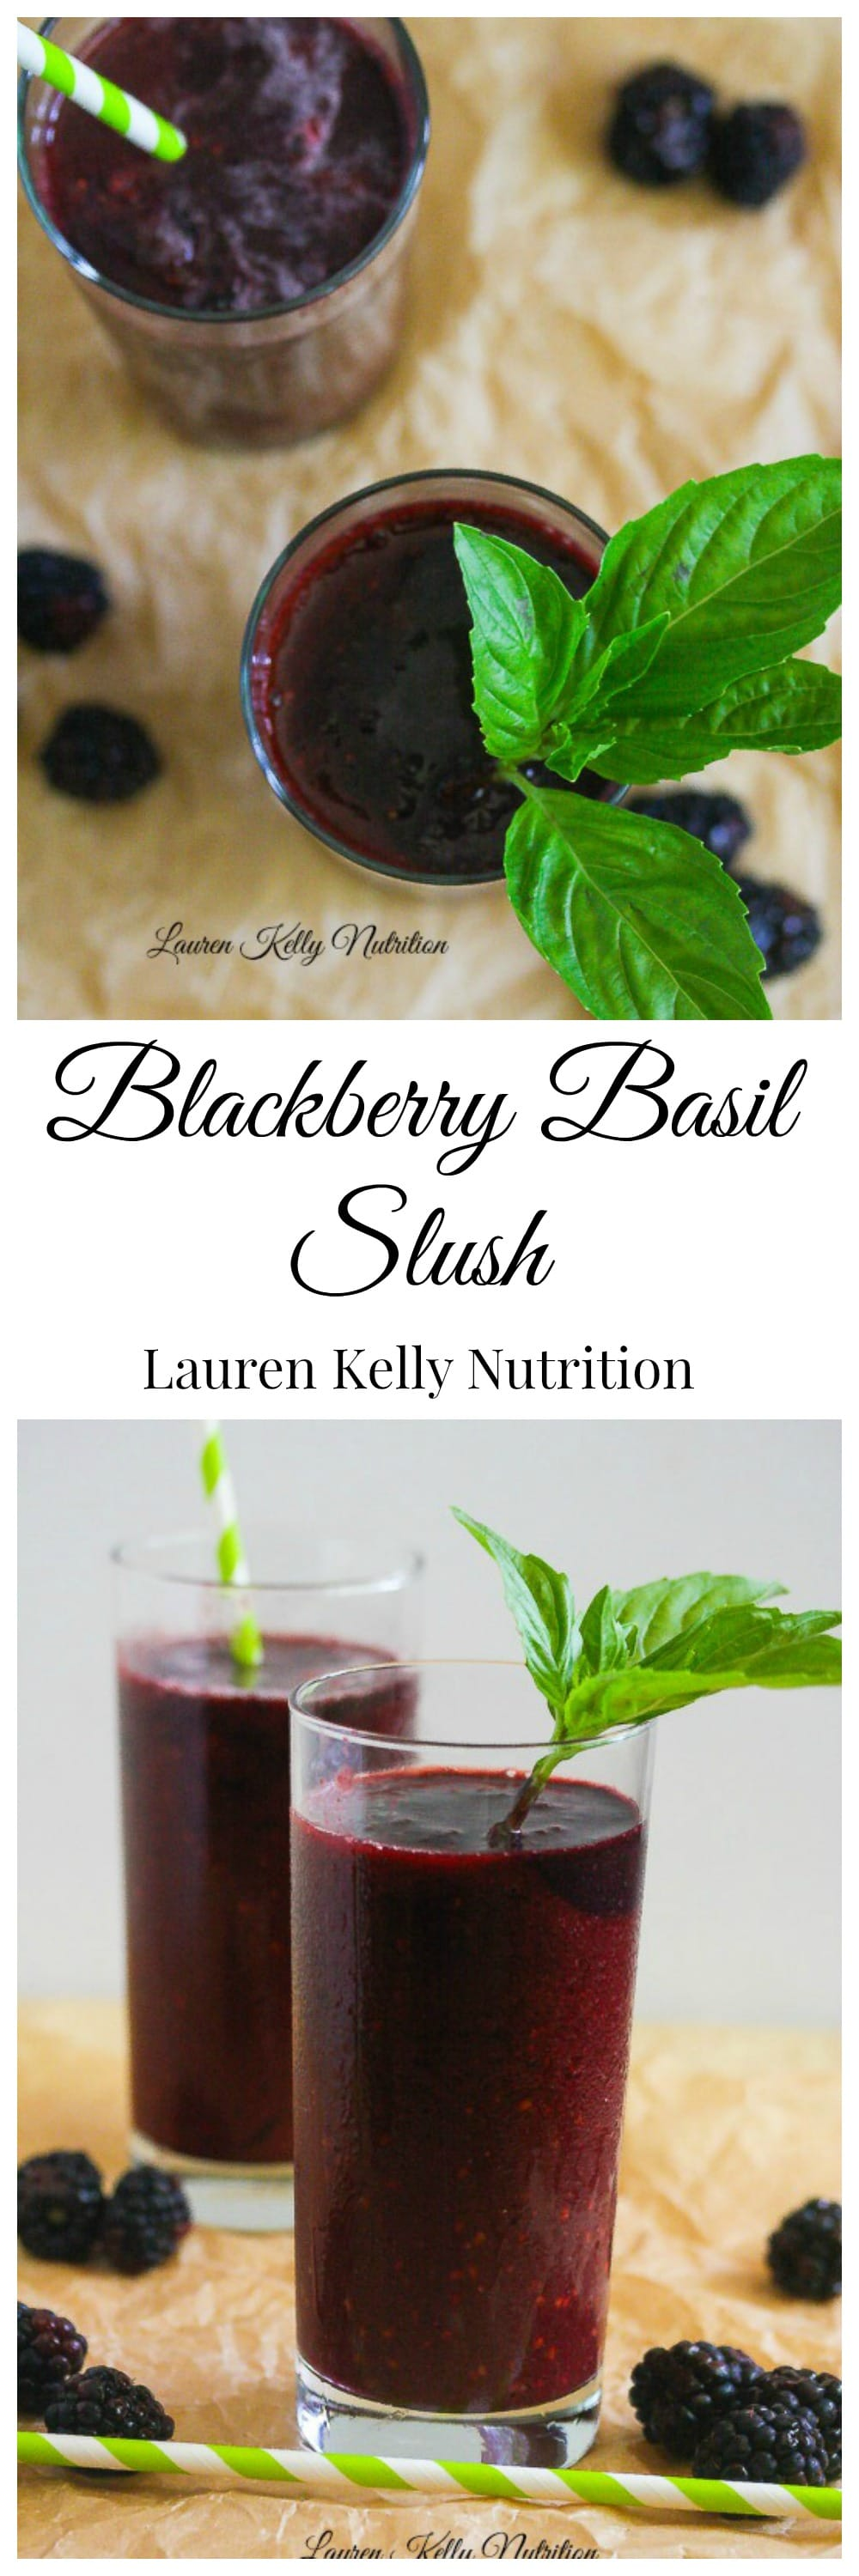 This Blackberry Basil Slush is the perfect, healthy way to cool you off this summer! #sugarfree #vegan